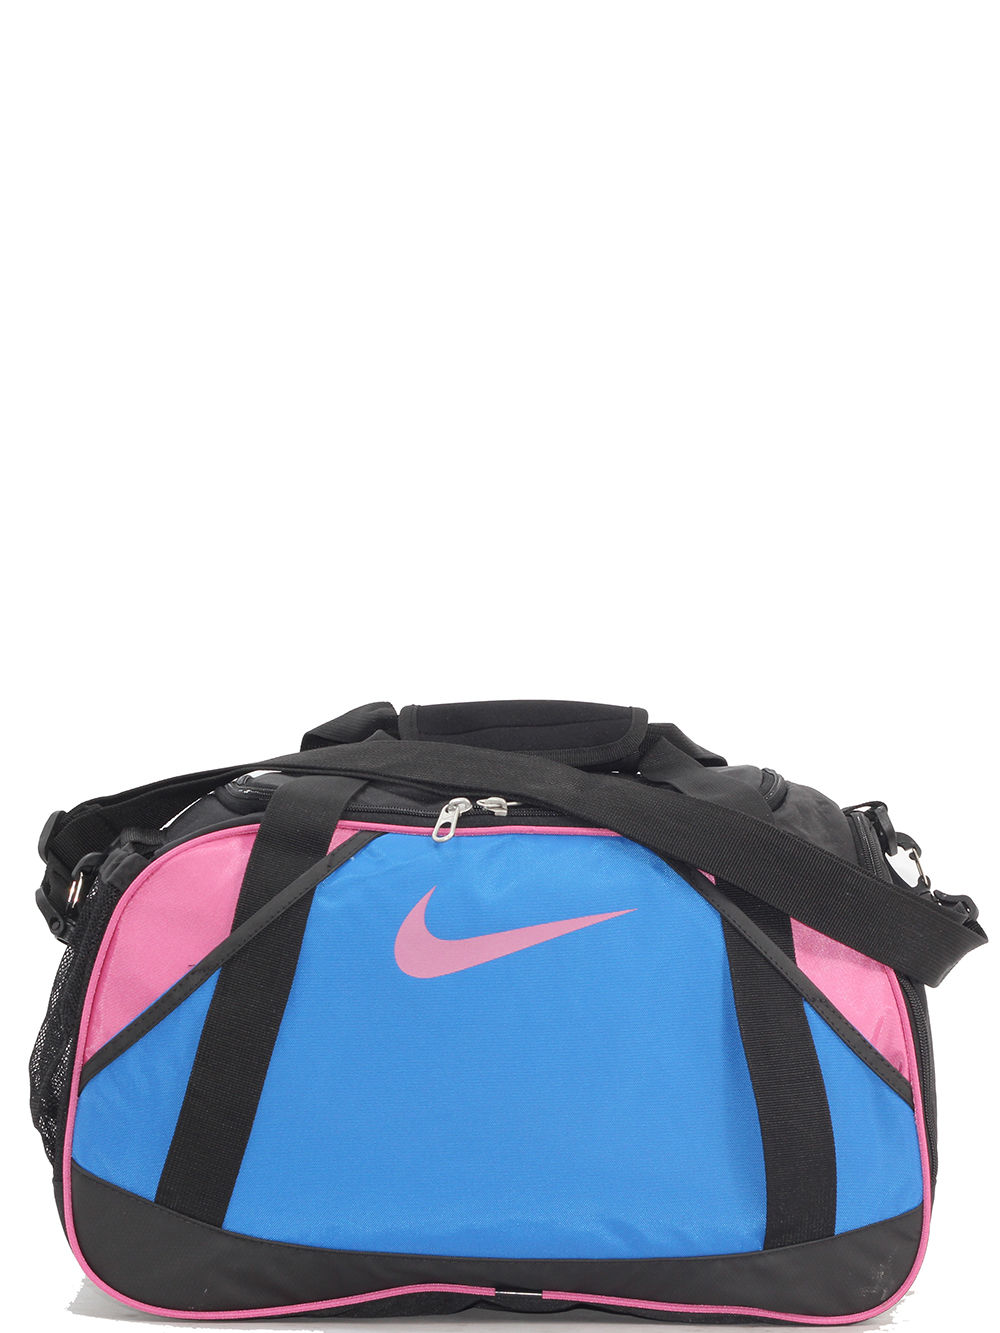 Nike Livestrong Duffe bags (M) Blue